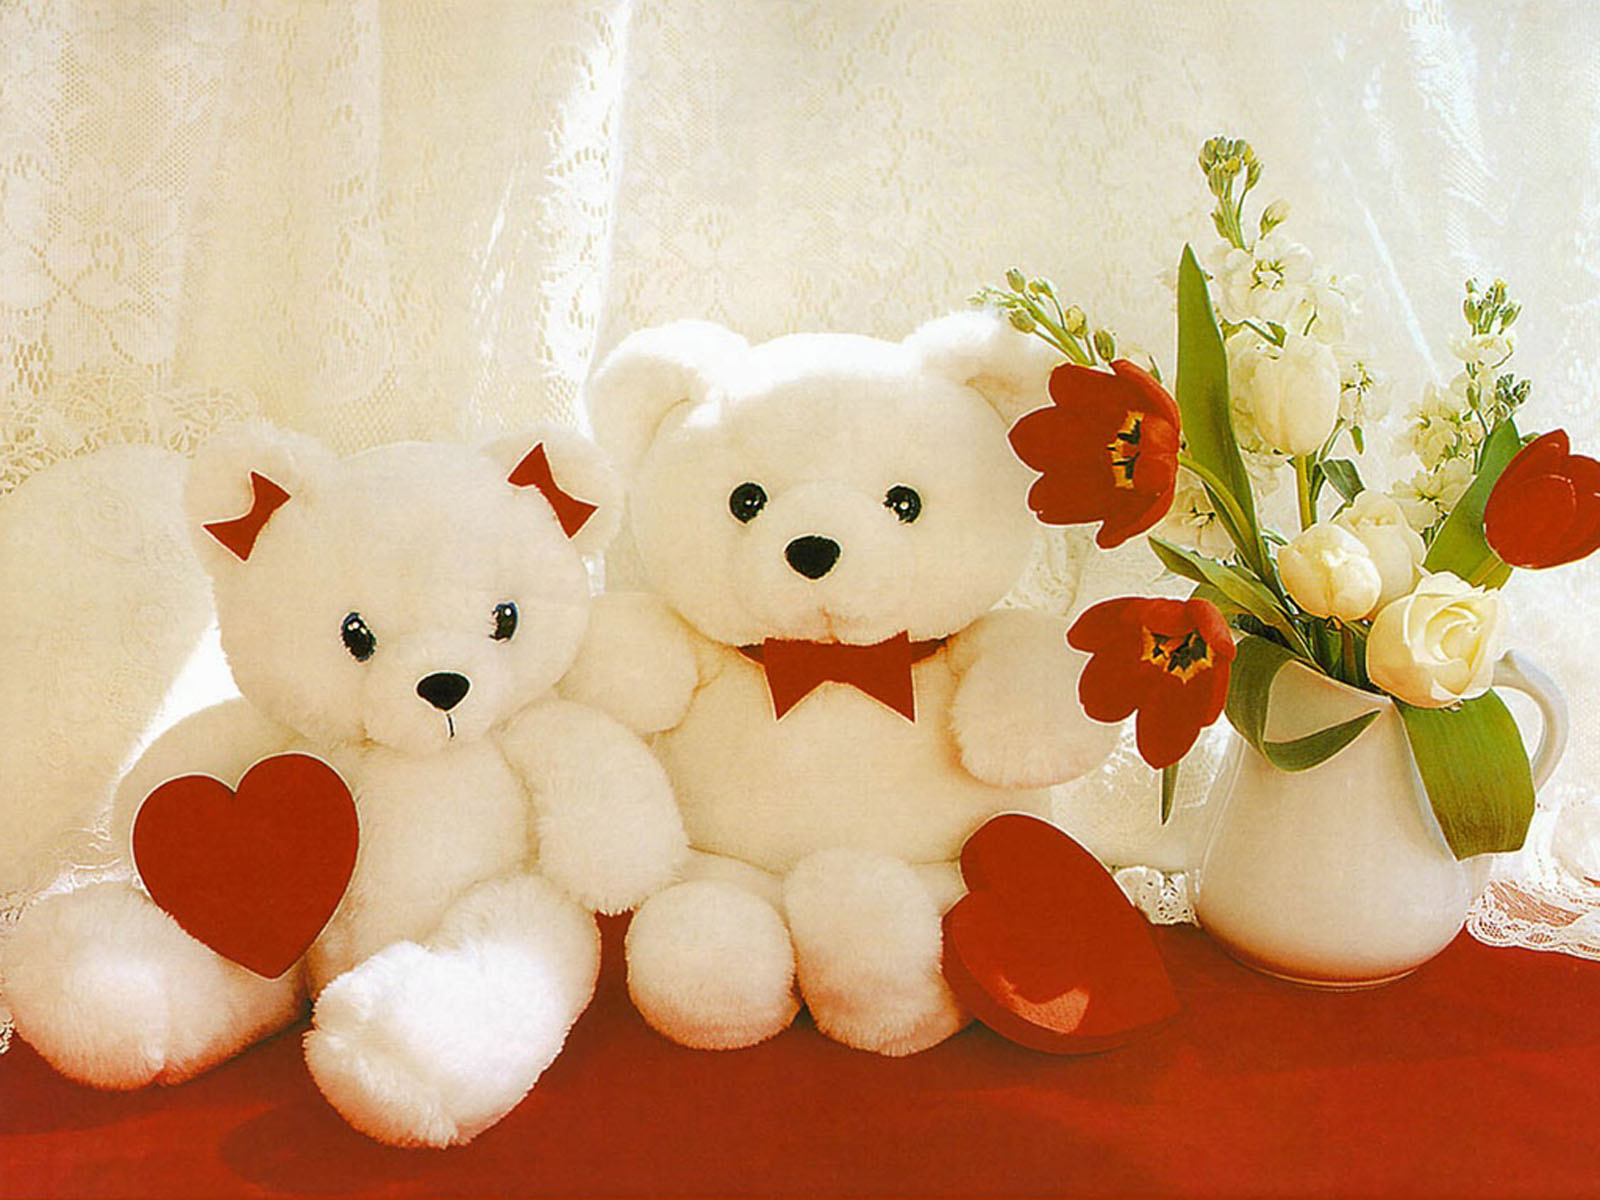 Cute Teddy Bear Images Have You Seen Our Bears DesignBump